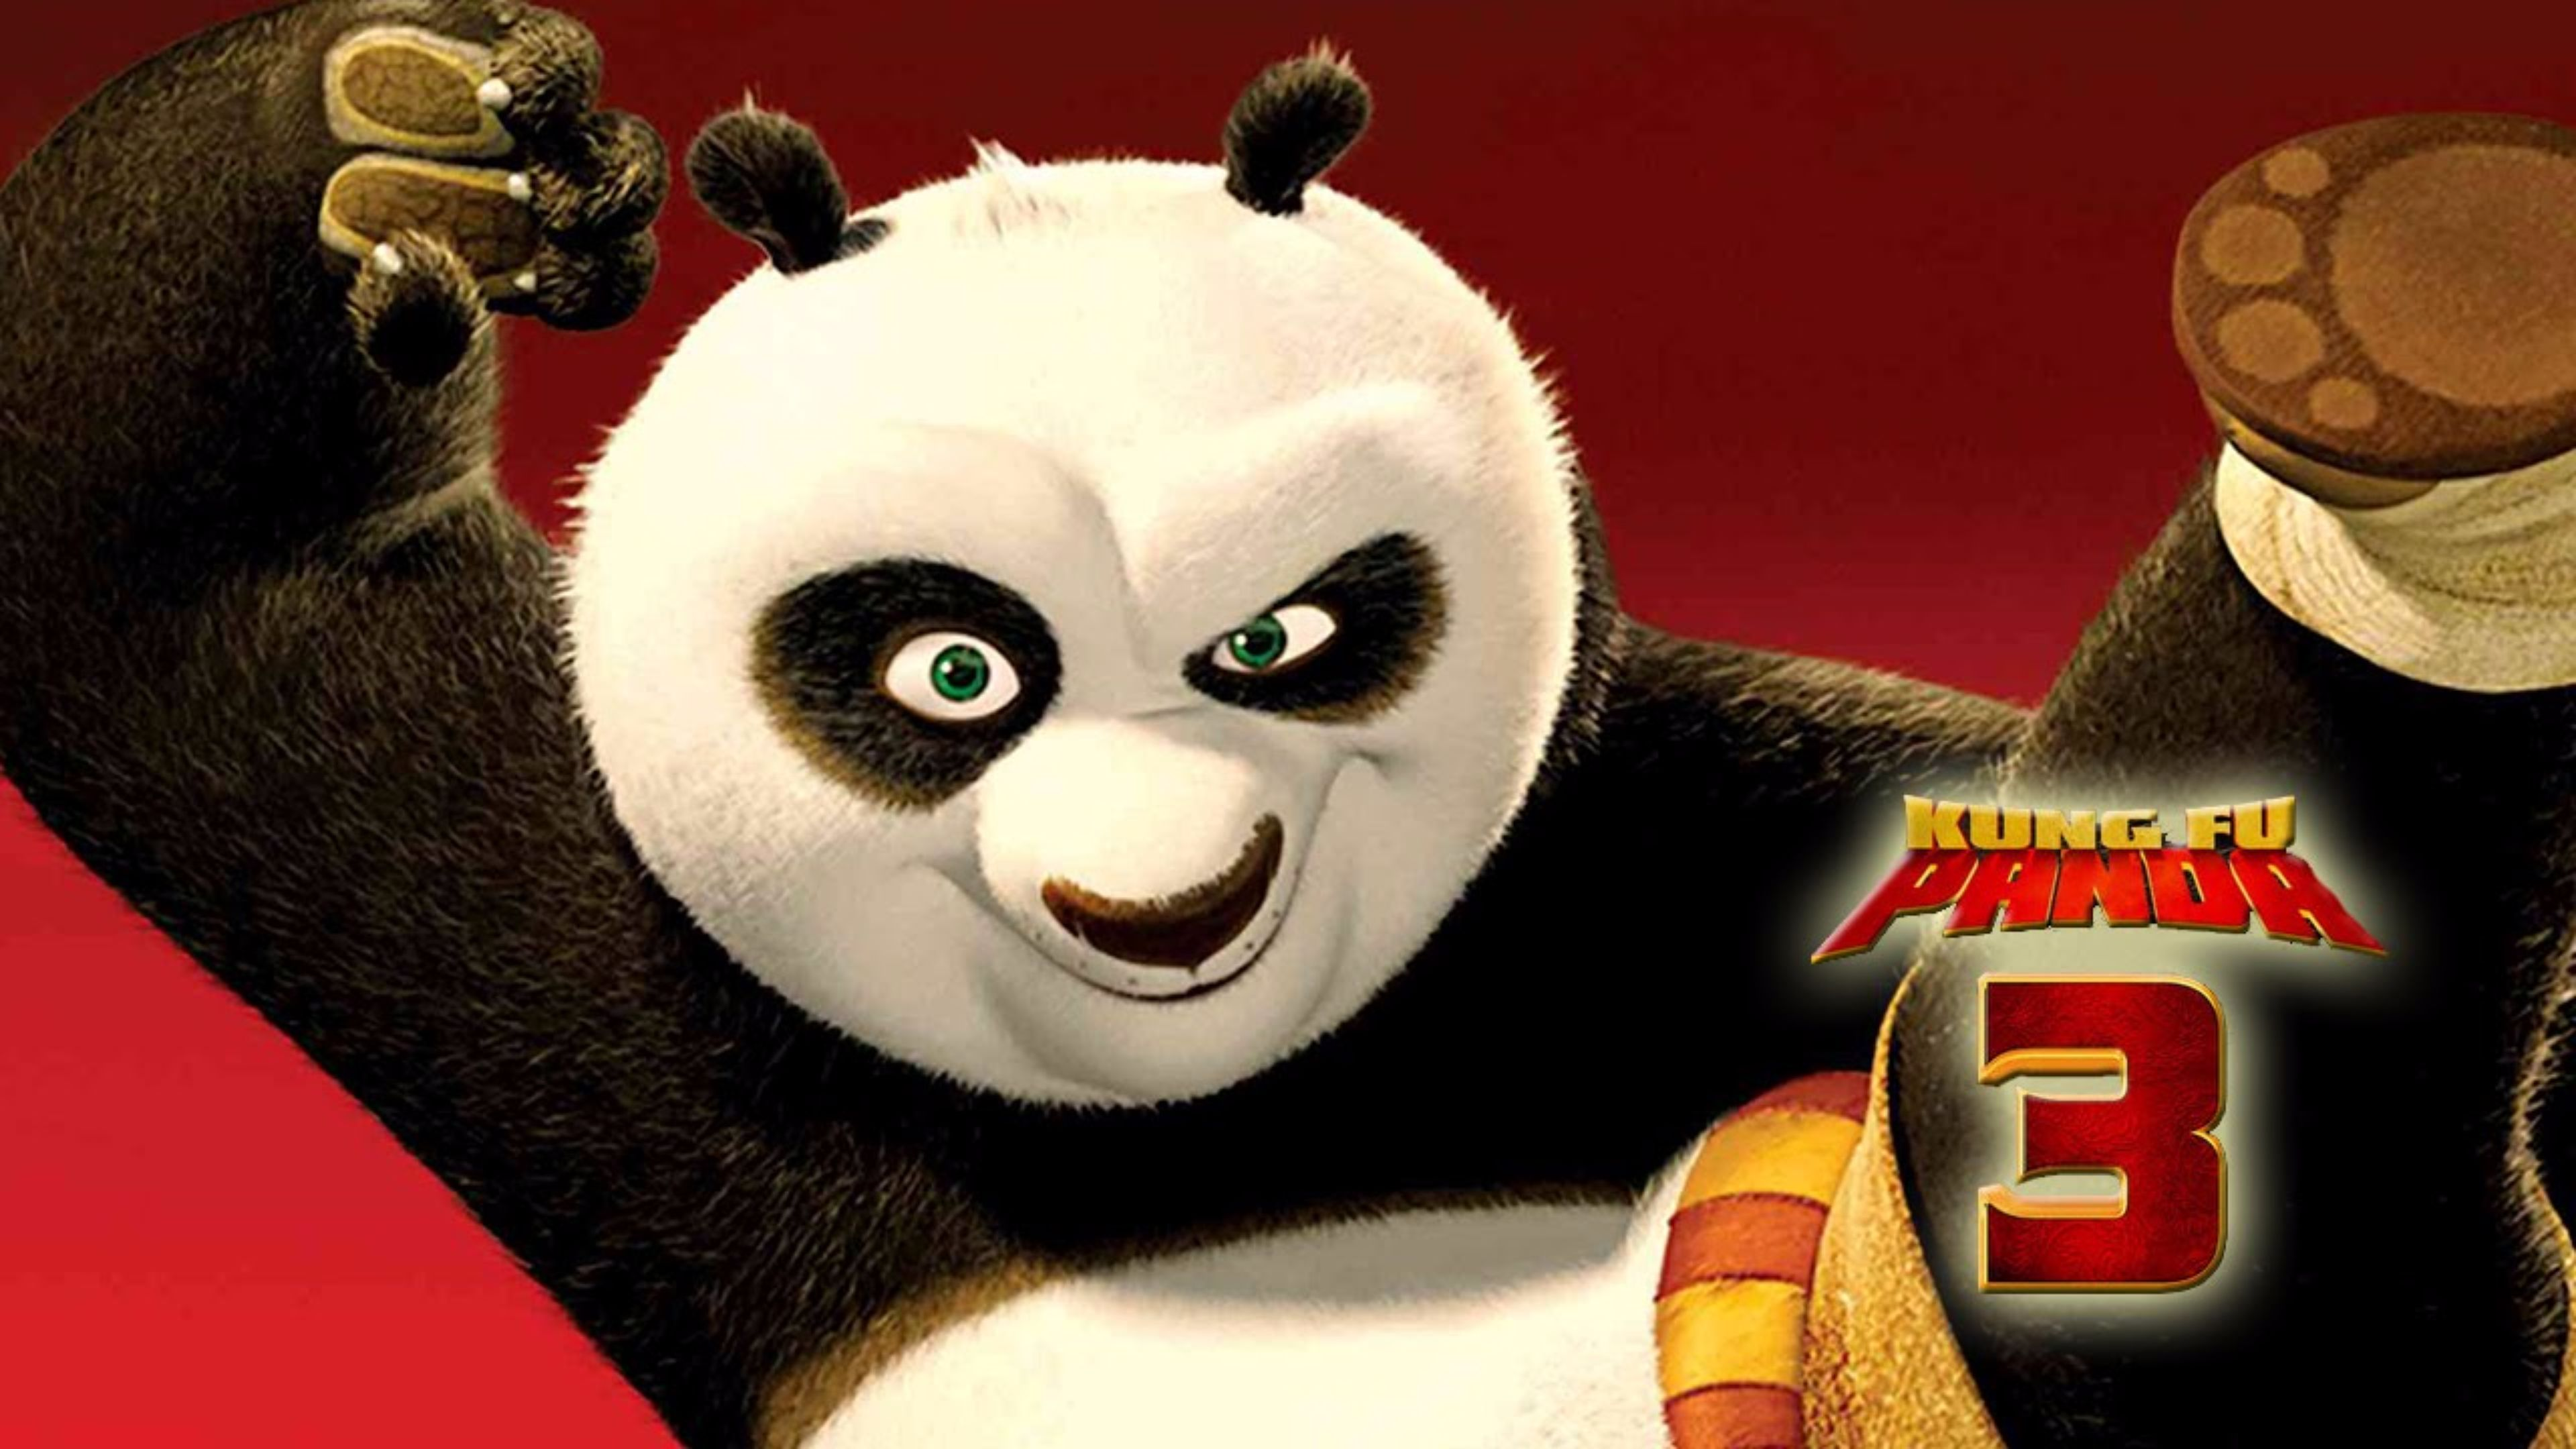 Kung fu panda iphone wallpaper - Download Kung Fu Panda Movie Wallpaper